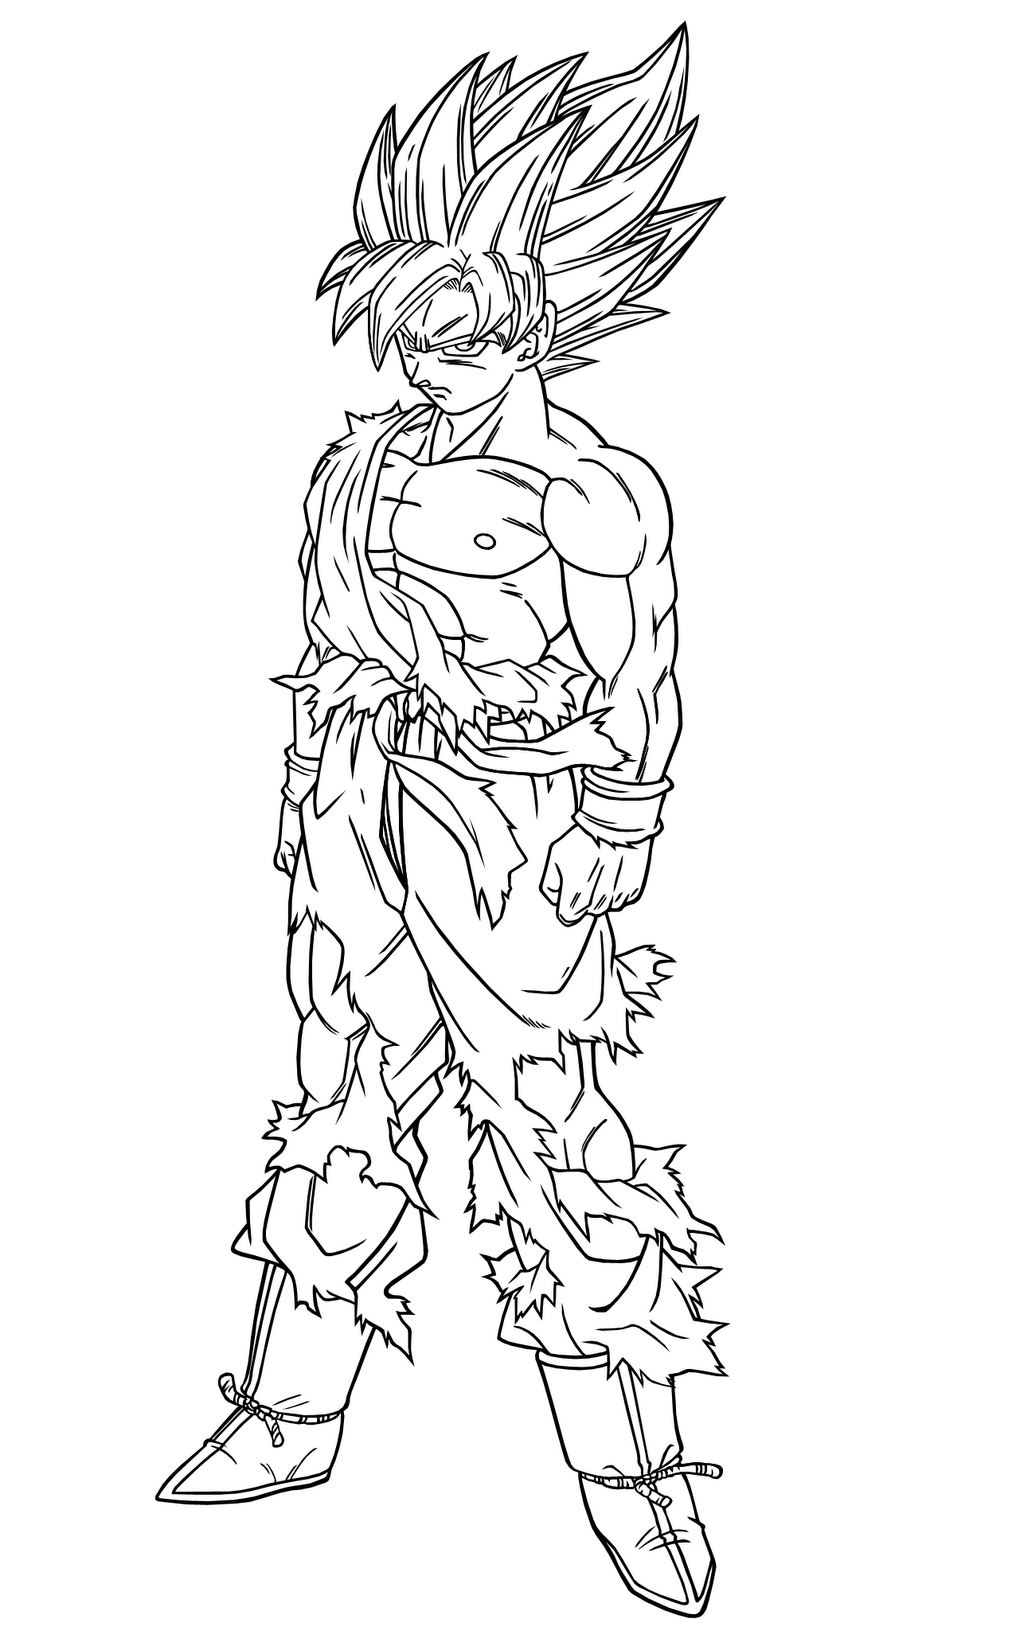 Songoku Super Saiyajin - Dragon Ball Z Kids Coloring Pages